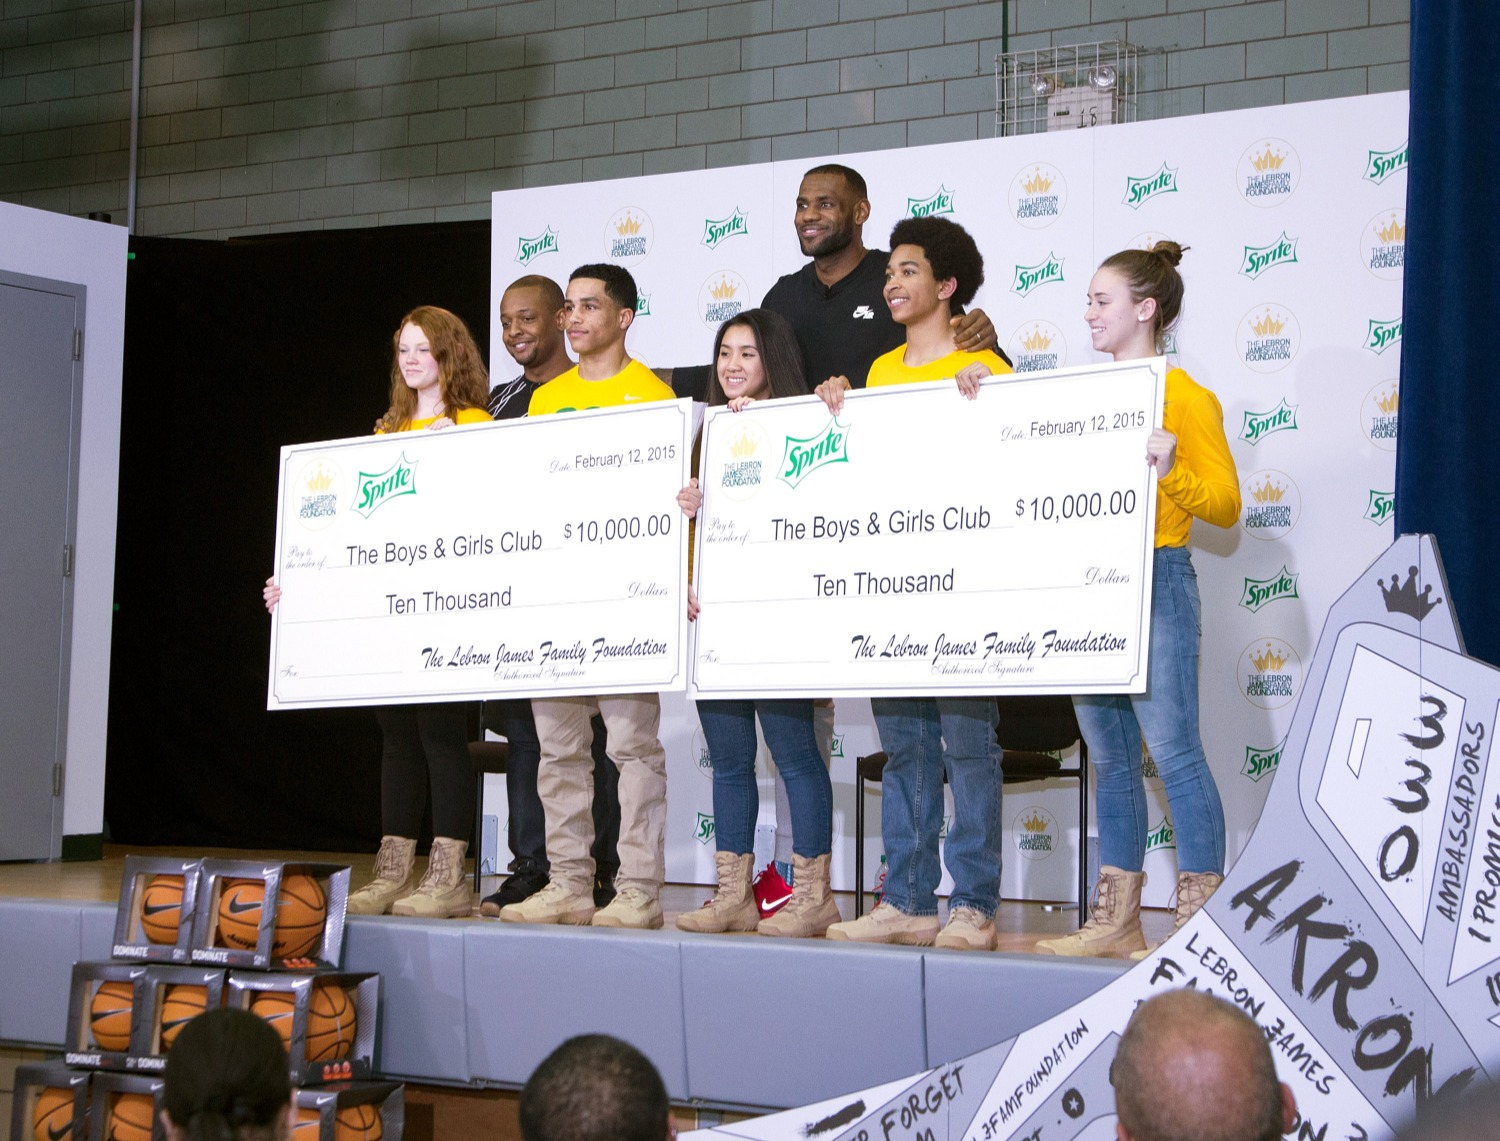 LeBron James turned The Decision into a $3 million donation.